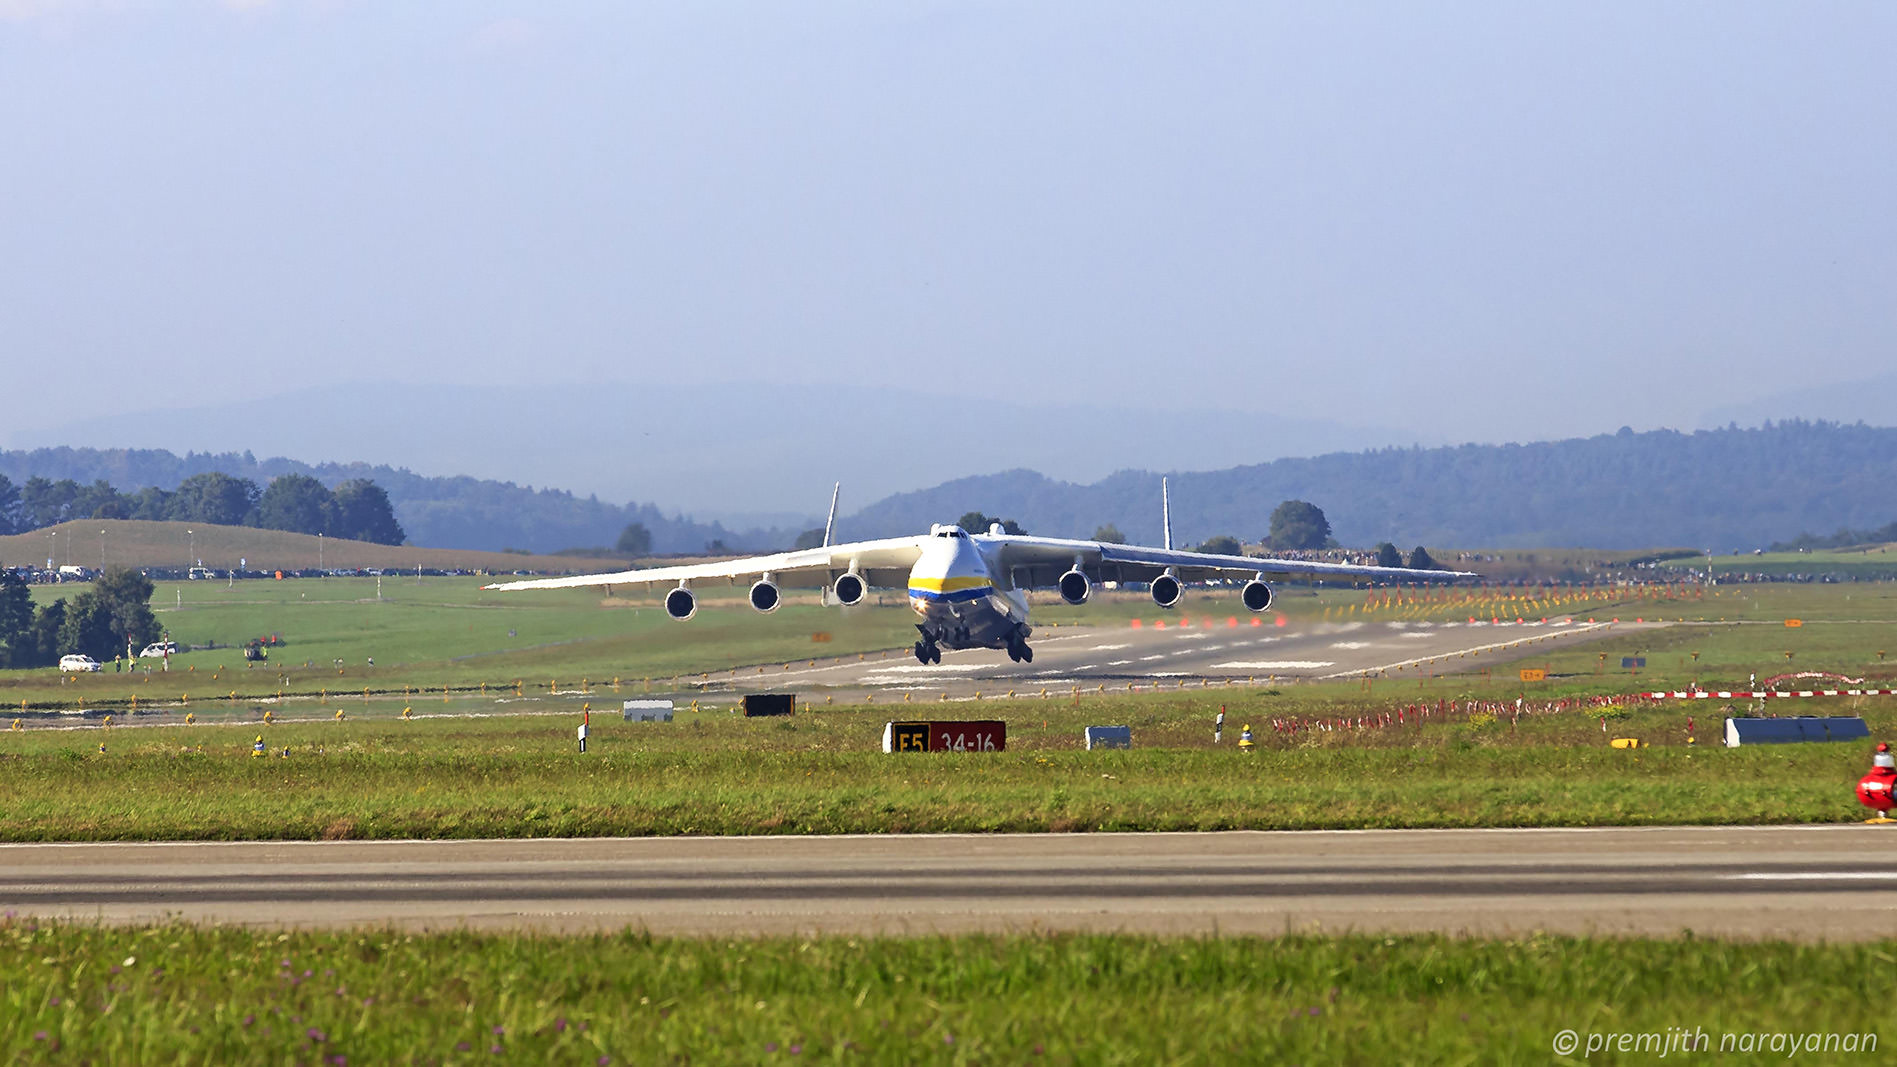 2. Antonov 225 before touch-down